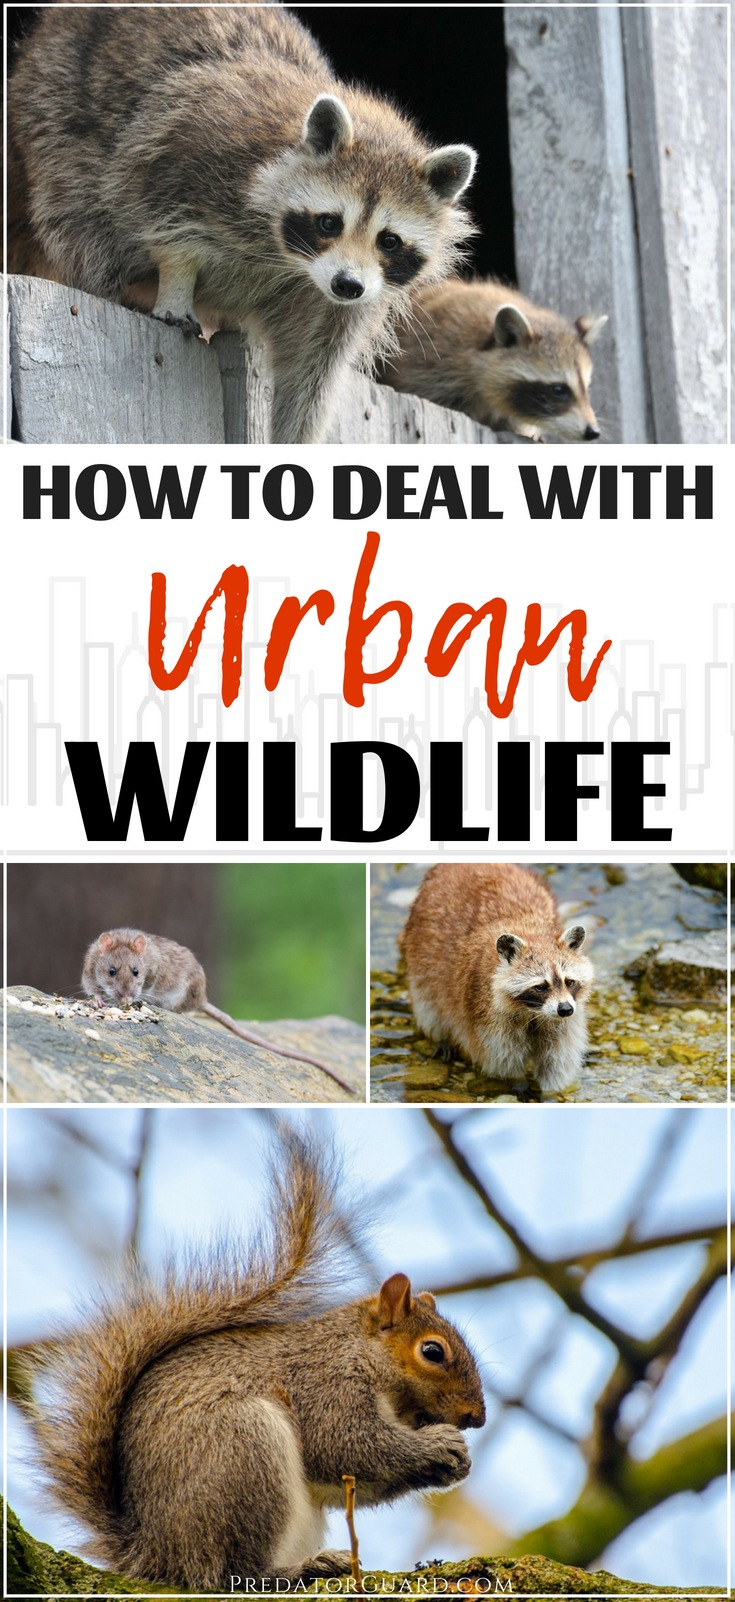 How-To-Deal-With-Urban-Wildlife-Predator-Guard